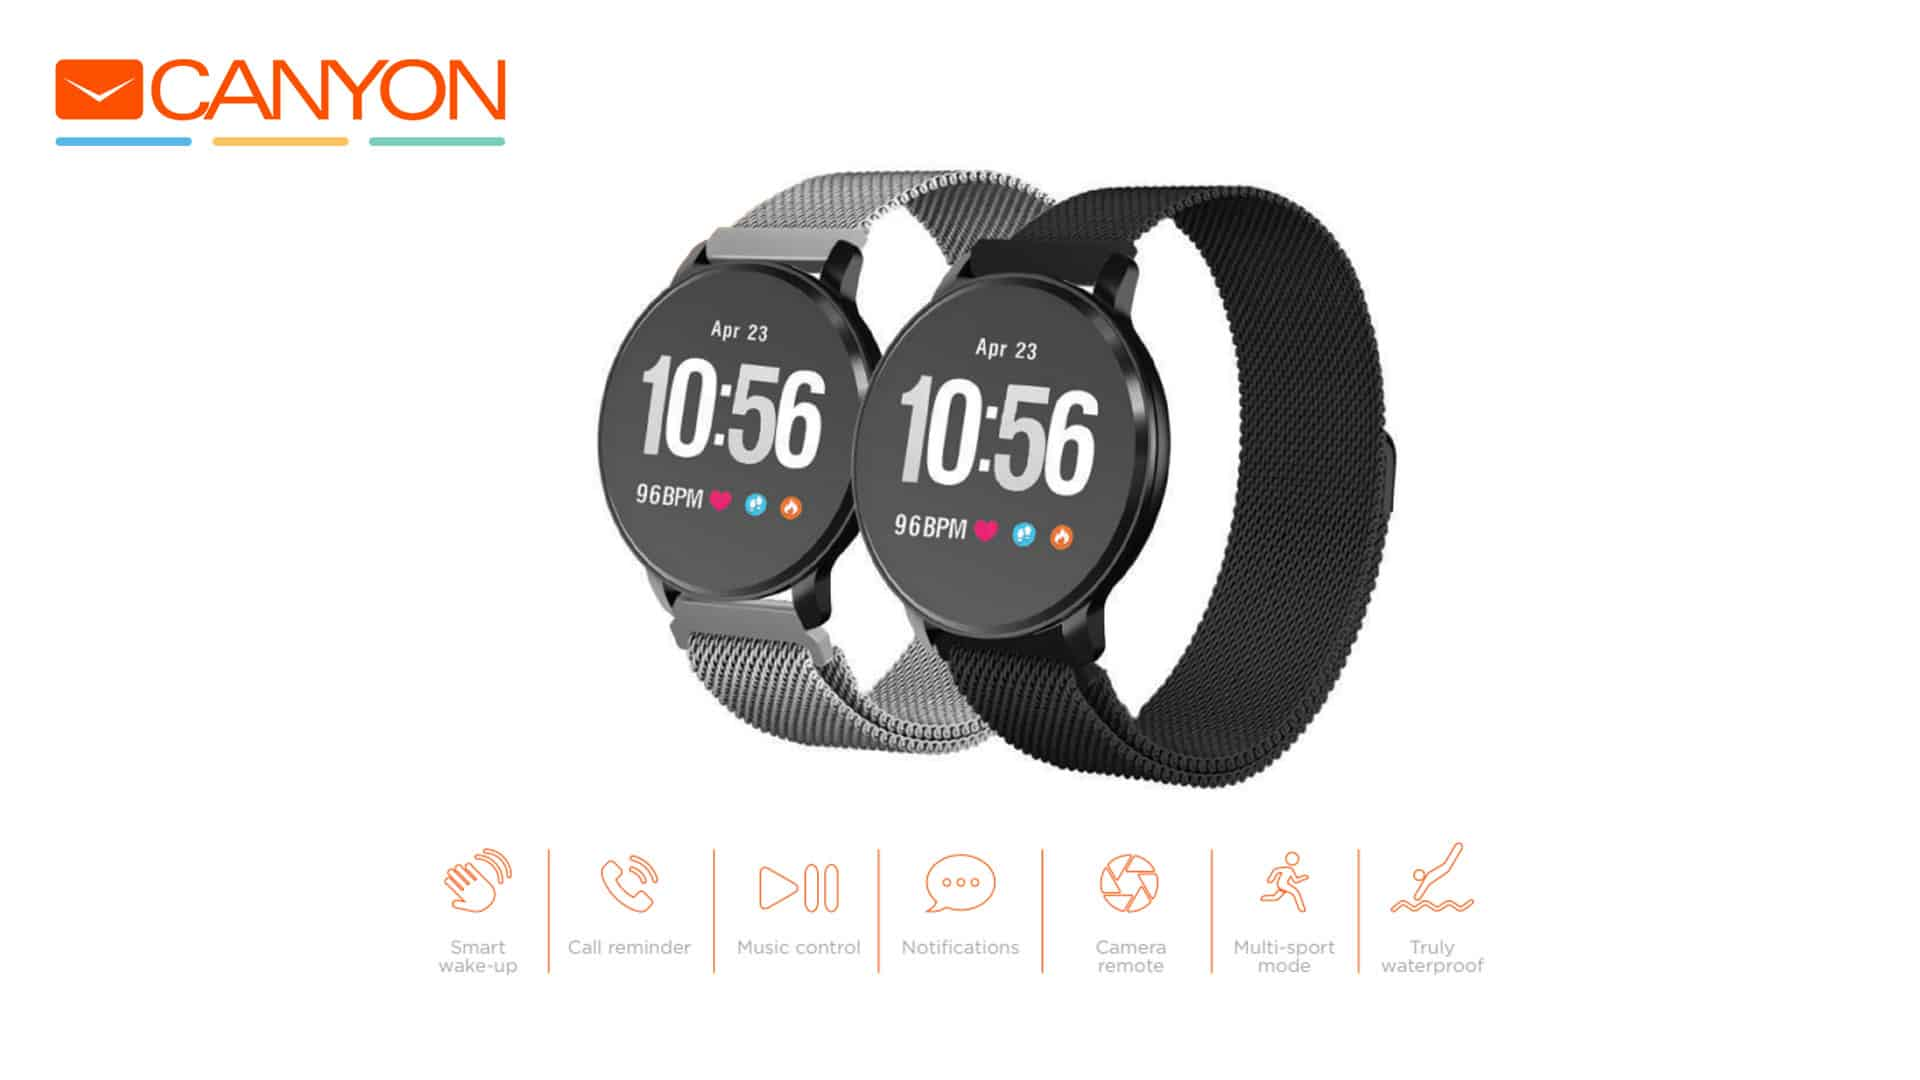 Canyon Stylish Smartwatch With Magnet Buckle